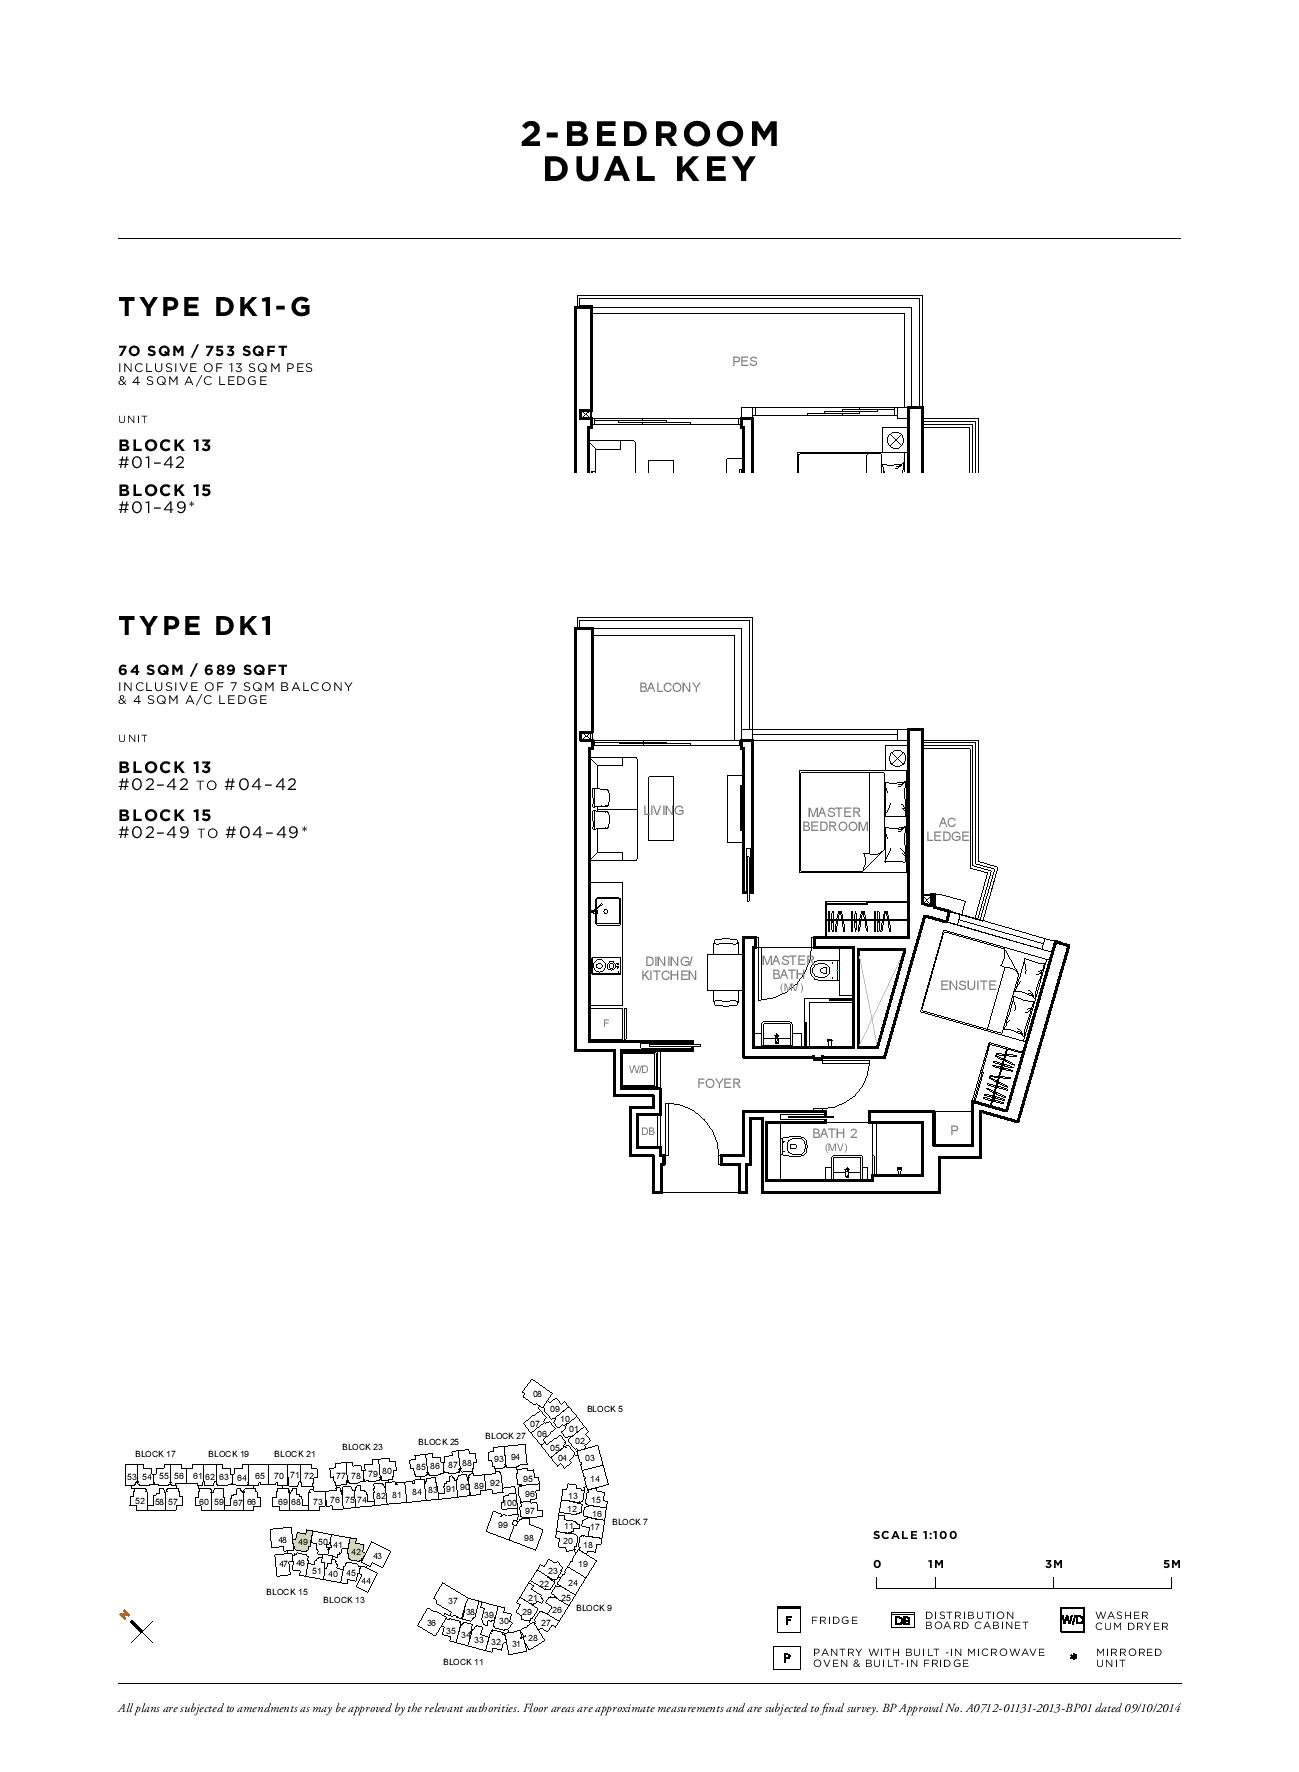 Sophia Hills 2 Bedroom Dual Key Type DK1-G, DK1 Floor Plans